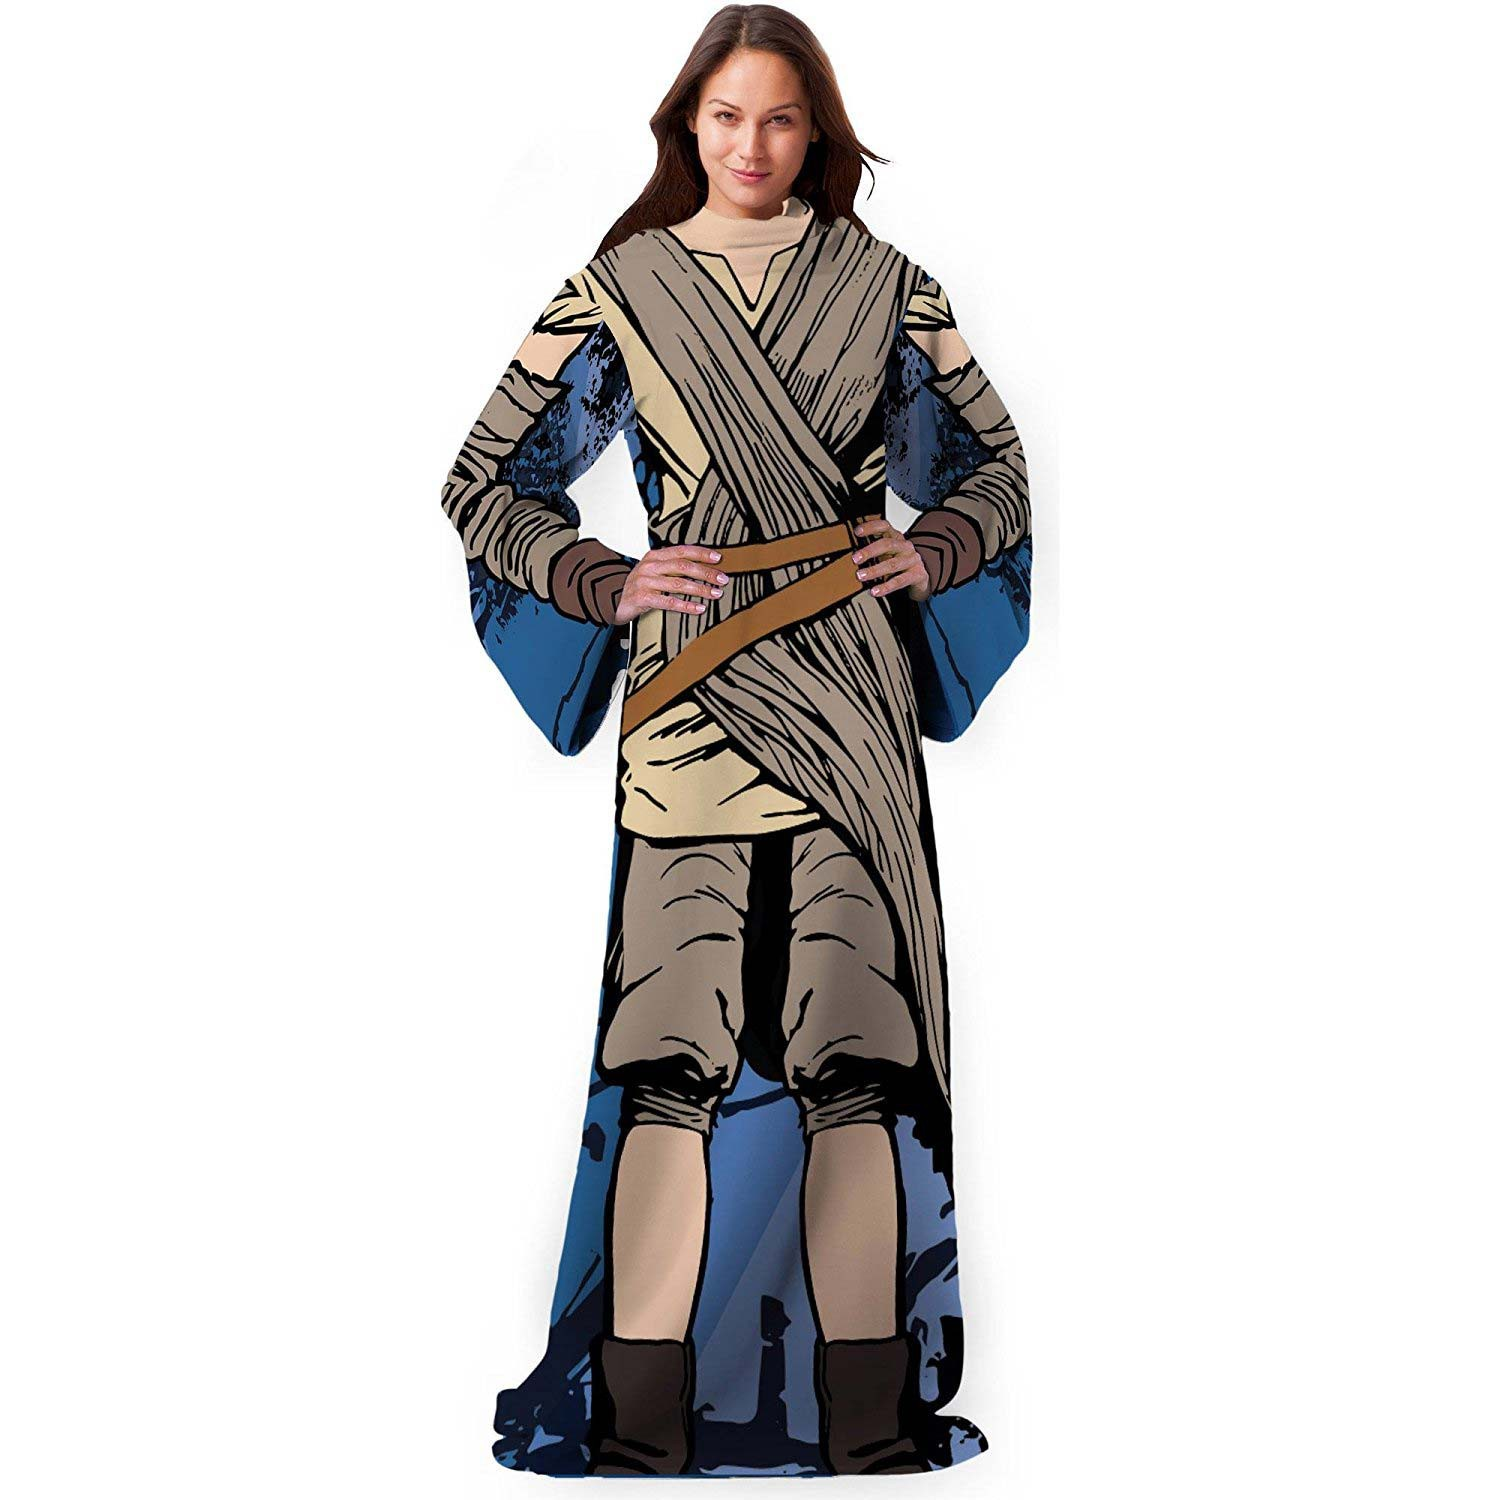 Star Wars Jakku Rey Adult Snuggie